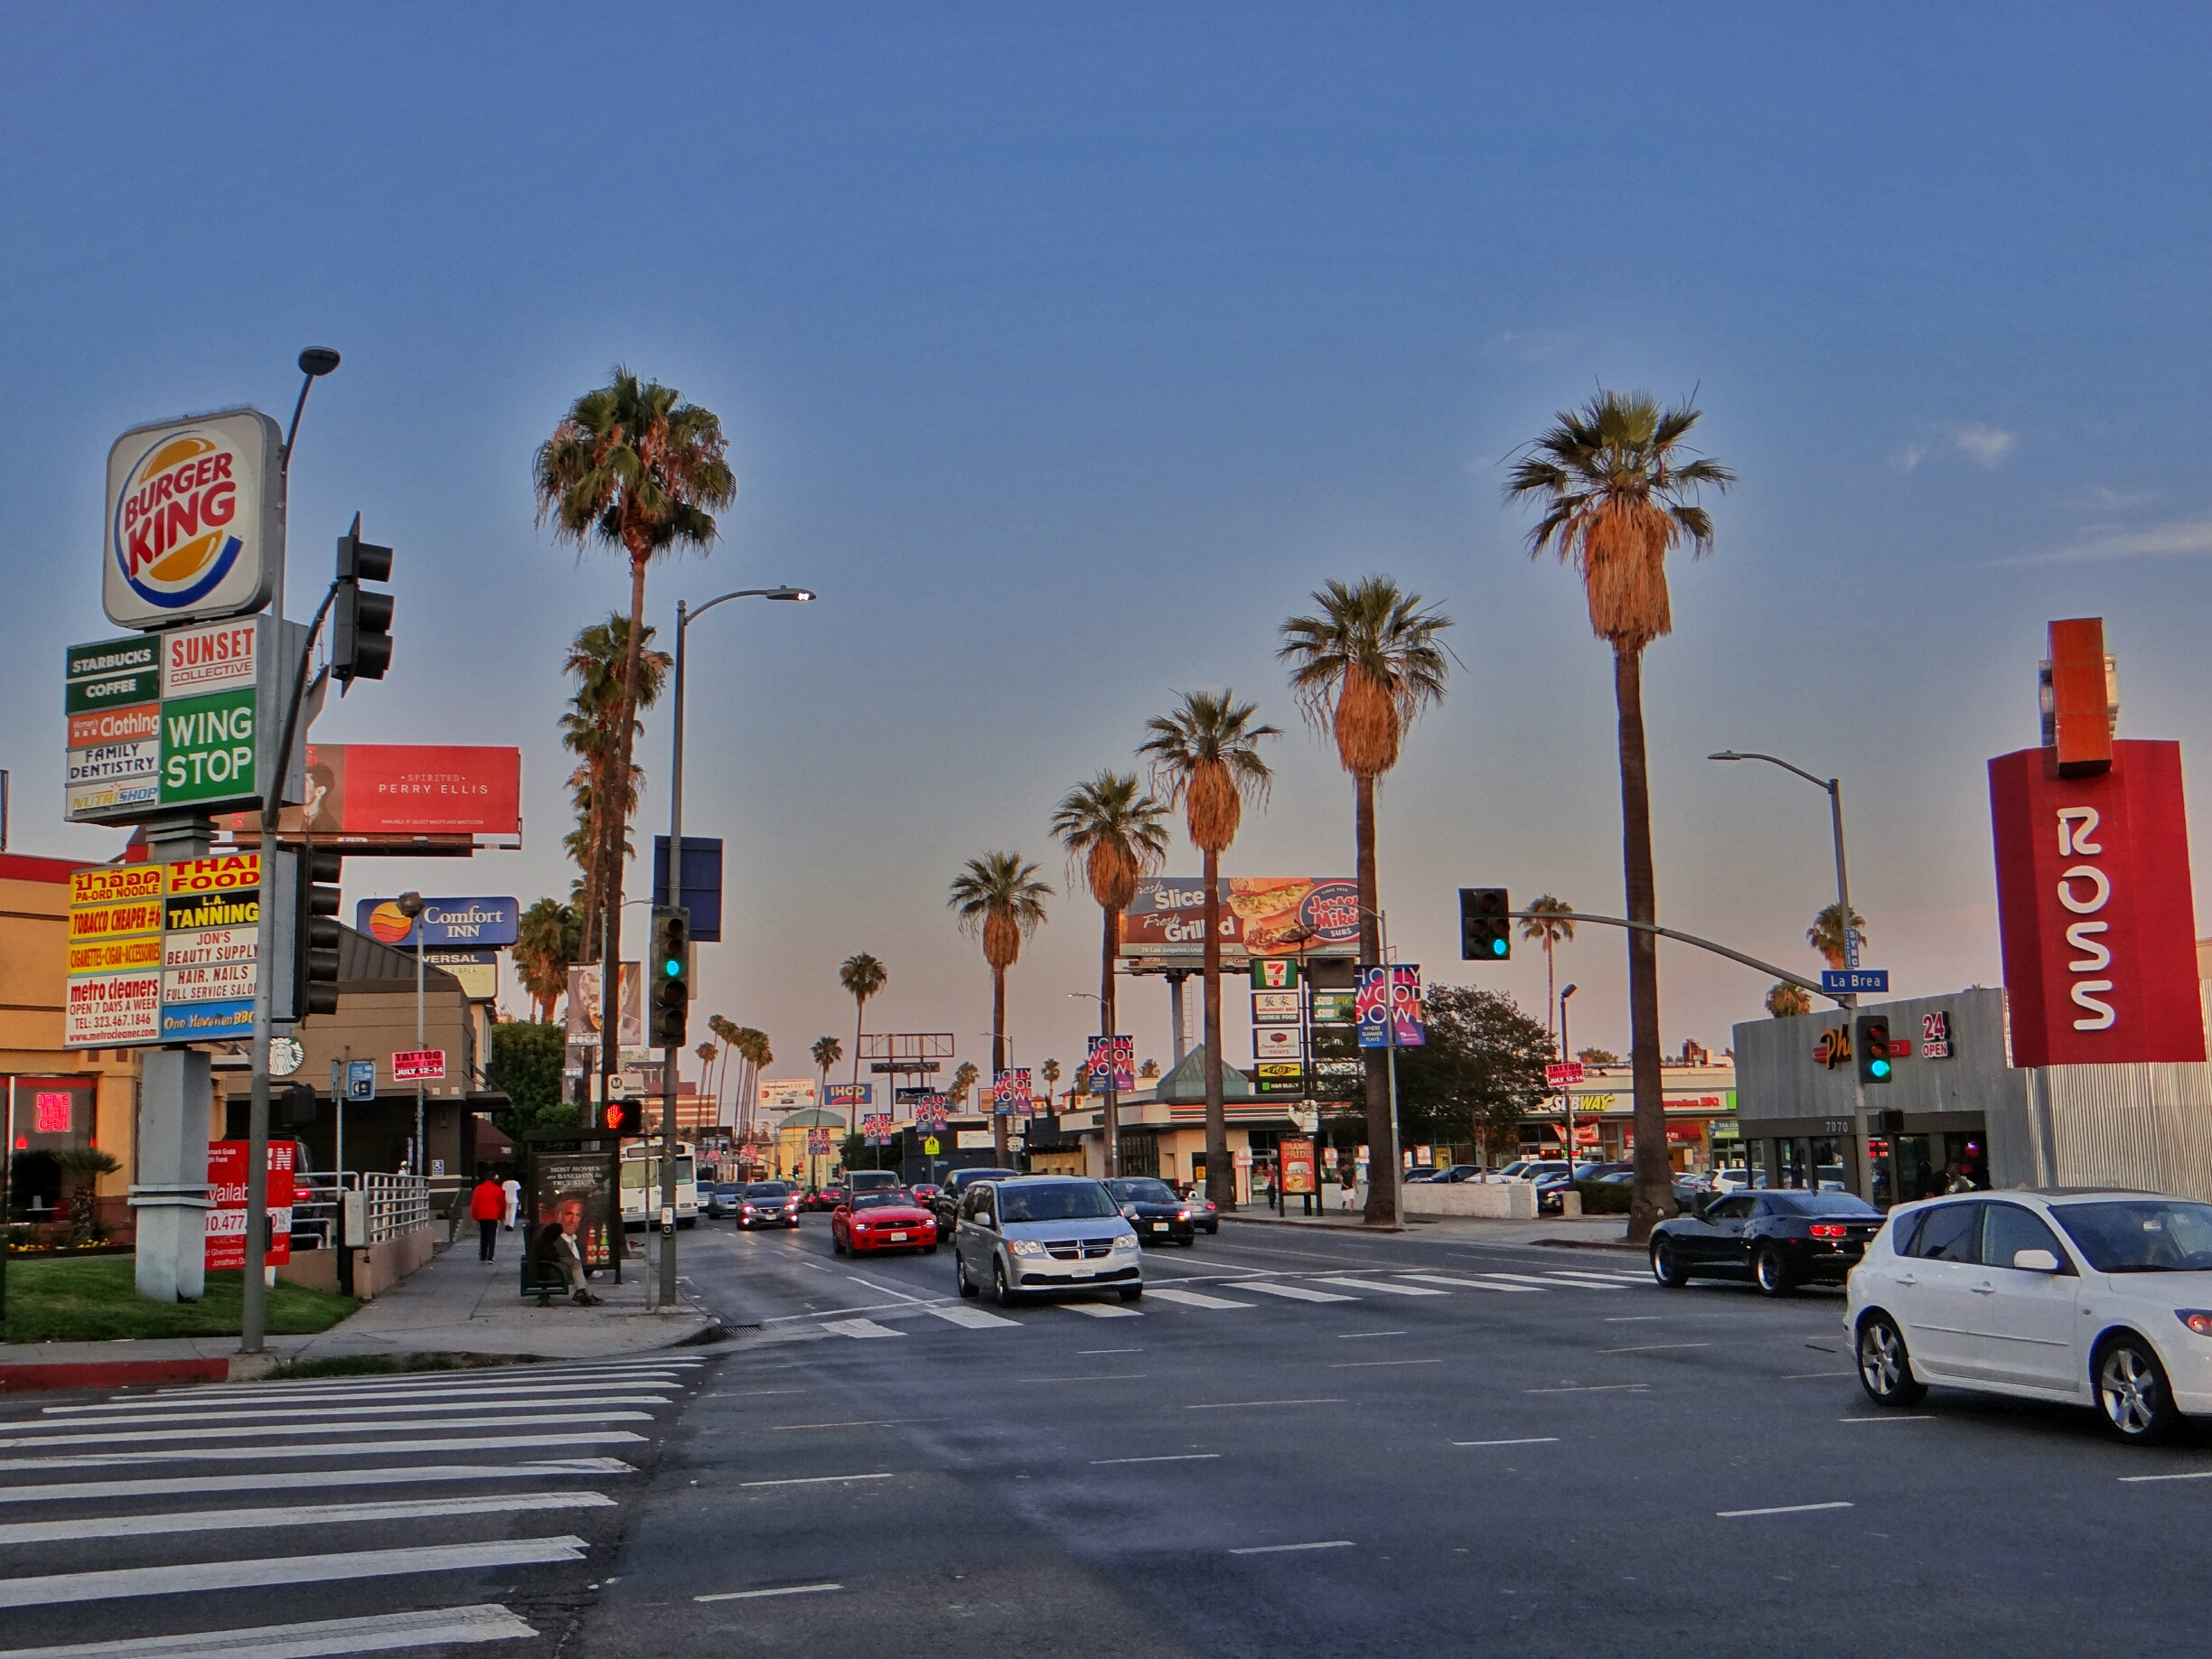 new york road map with Los Angeles Hollywood Road Trip on Photo 05 besides Los Angeles Hollywood Road Trip besides 26699758 additionally 8 Things You May Not Know About Route 66 further Thanksgiving Travel Los Angeles 2016 Traffic Lax.